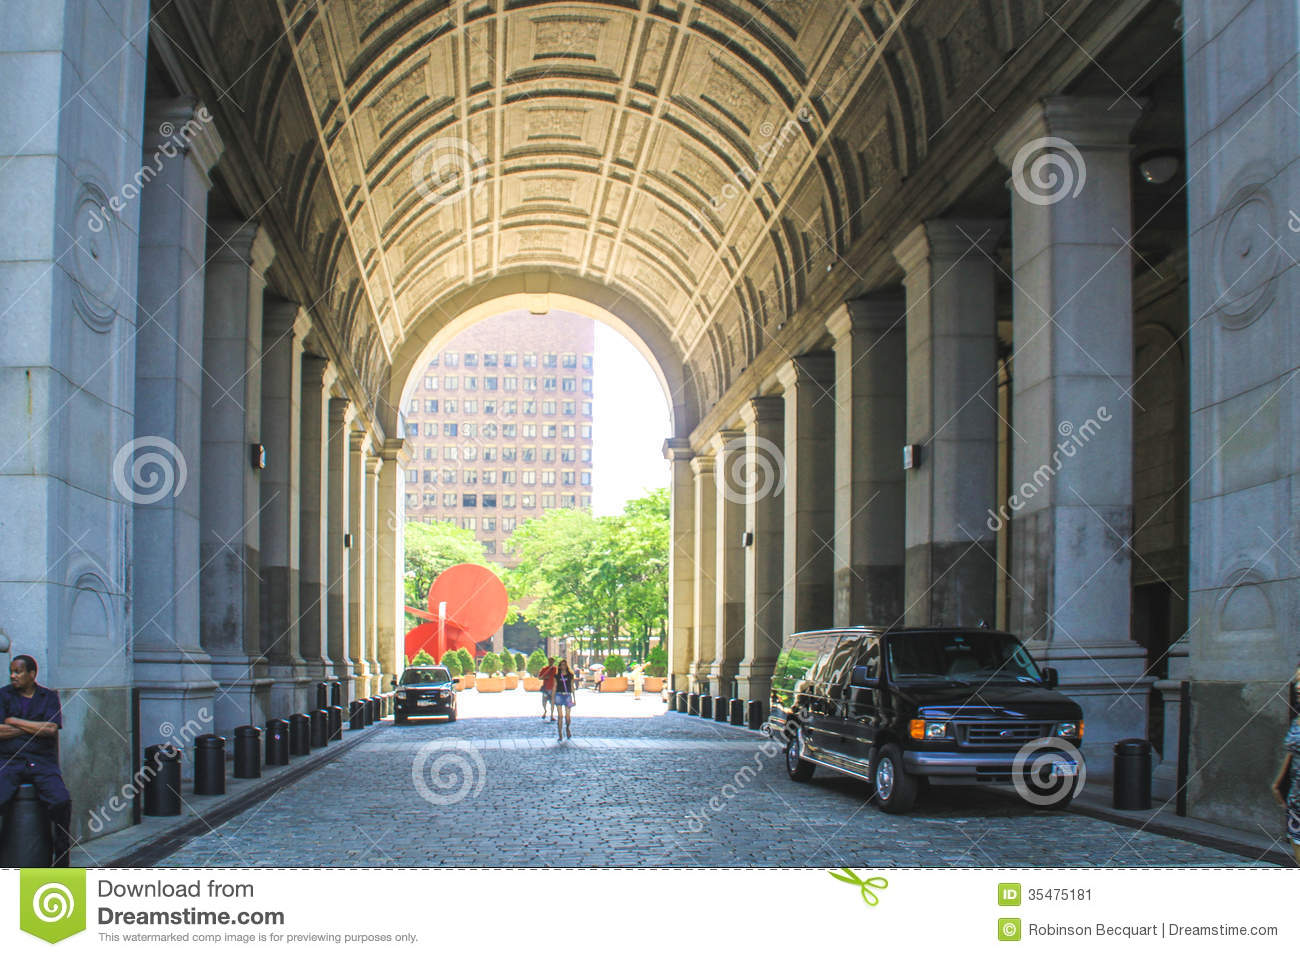 manhattan-municipal-building-new-york-city-usa-august-tourists-under-arch-35475181